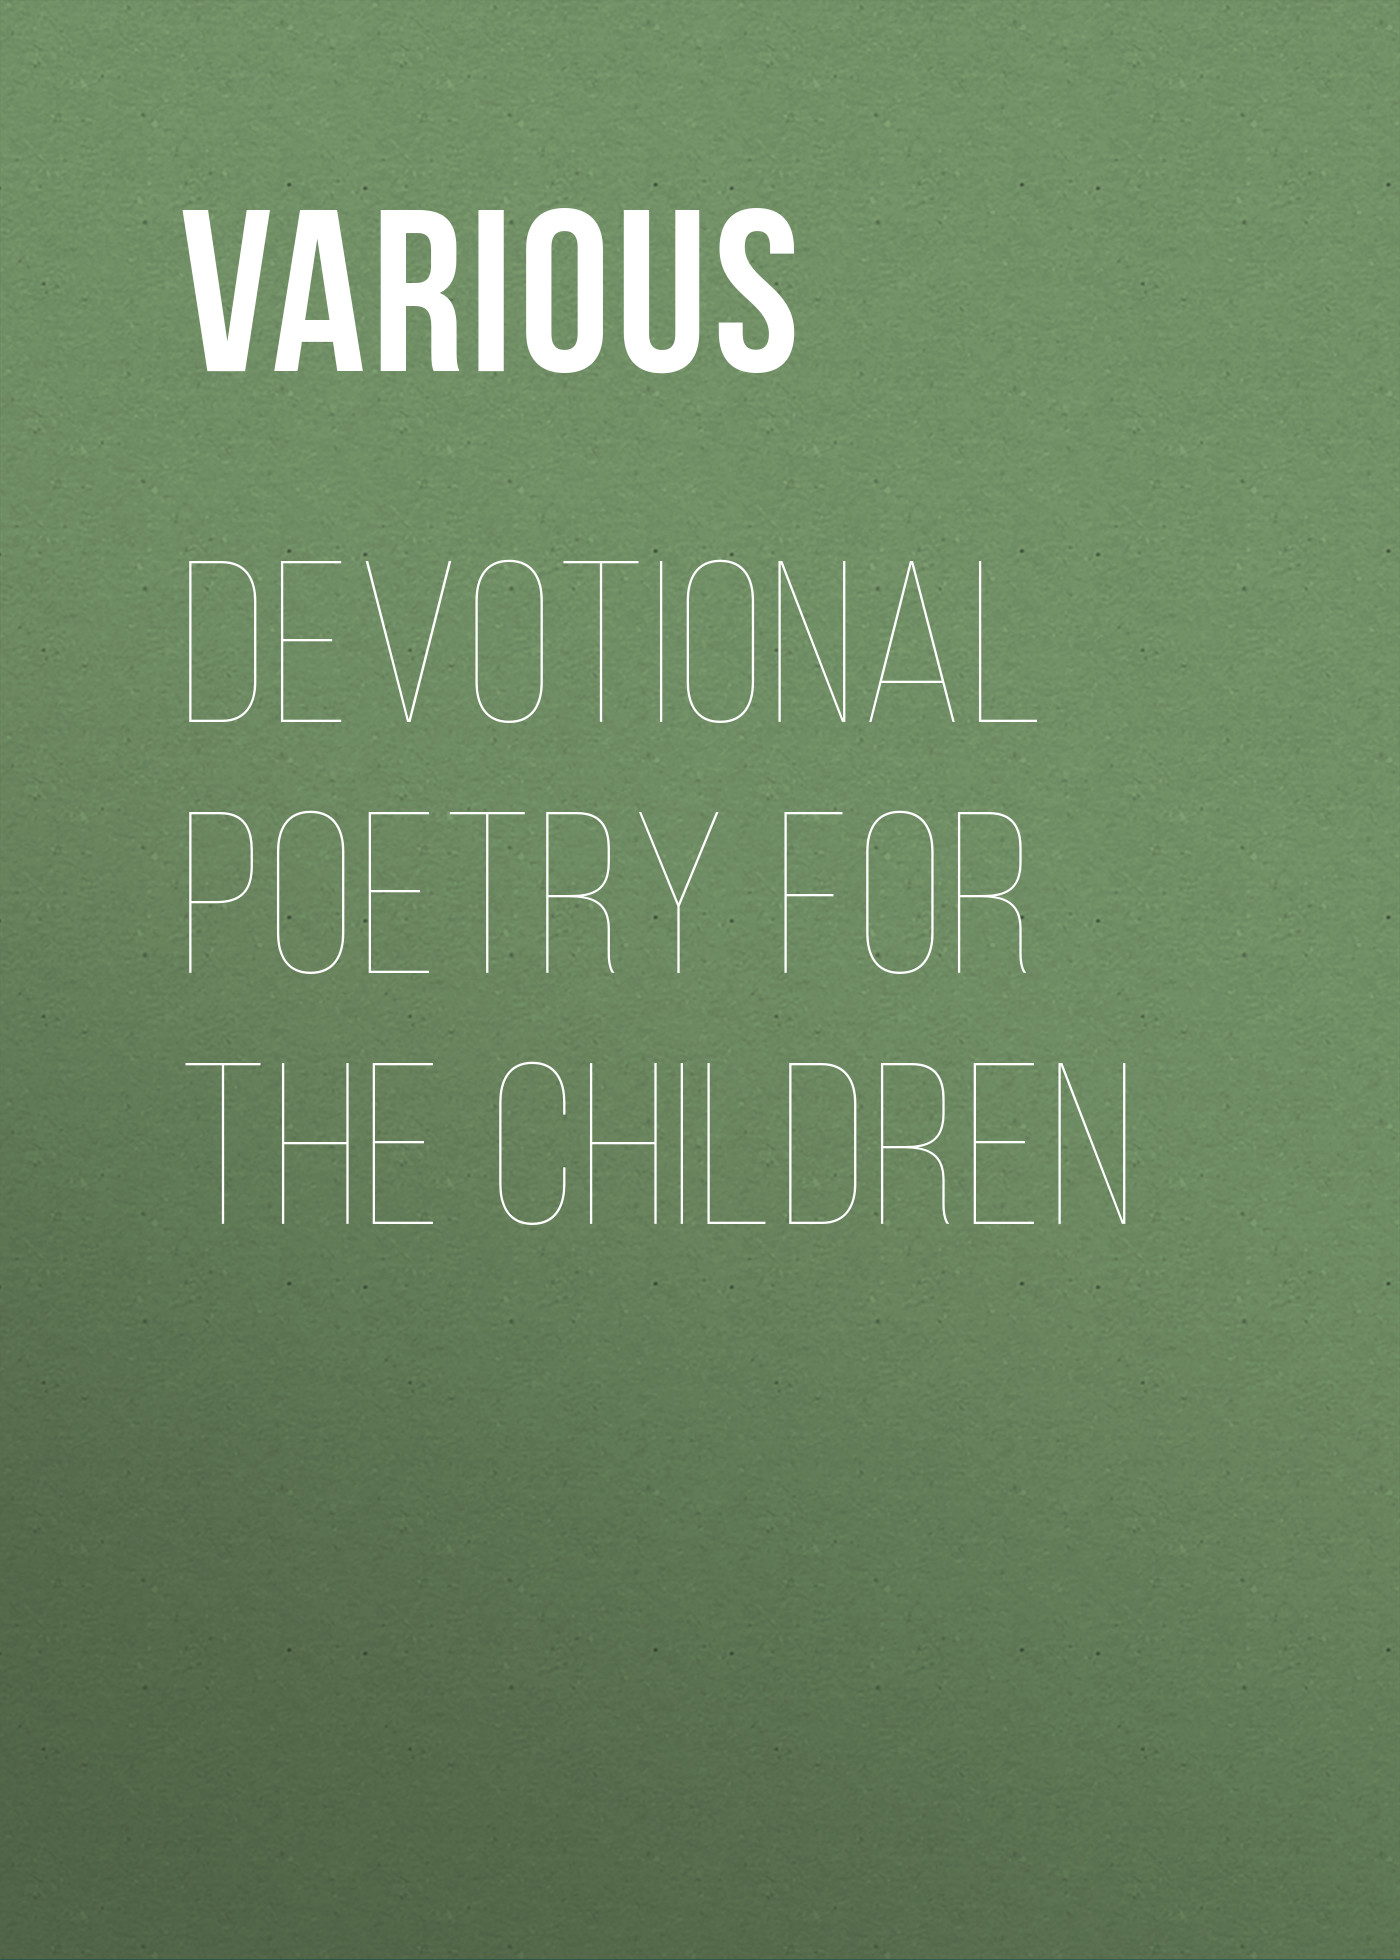 Various Devotional Poetry for the Children the complete poetry